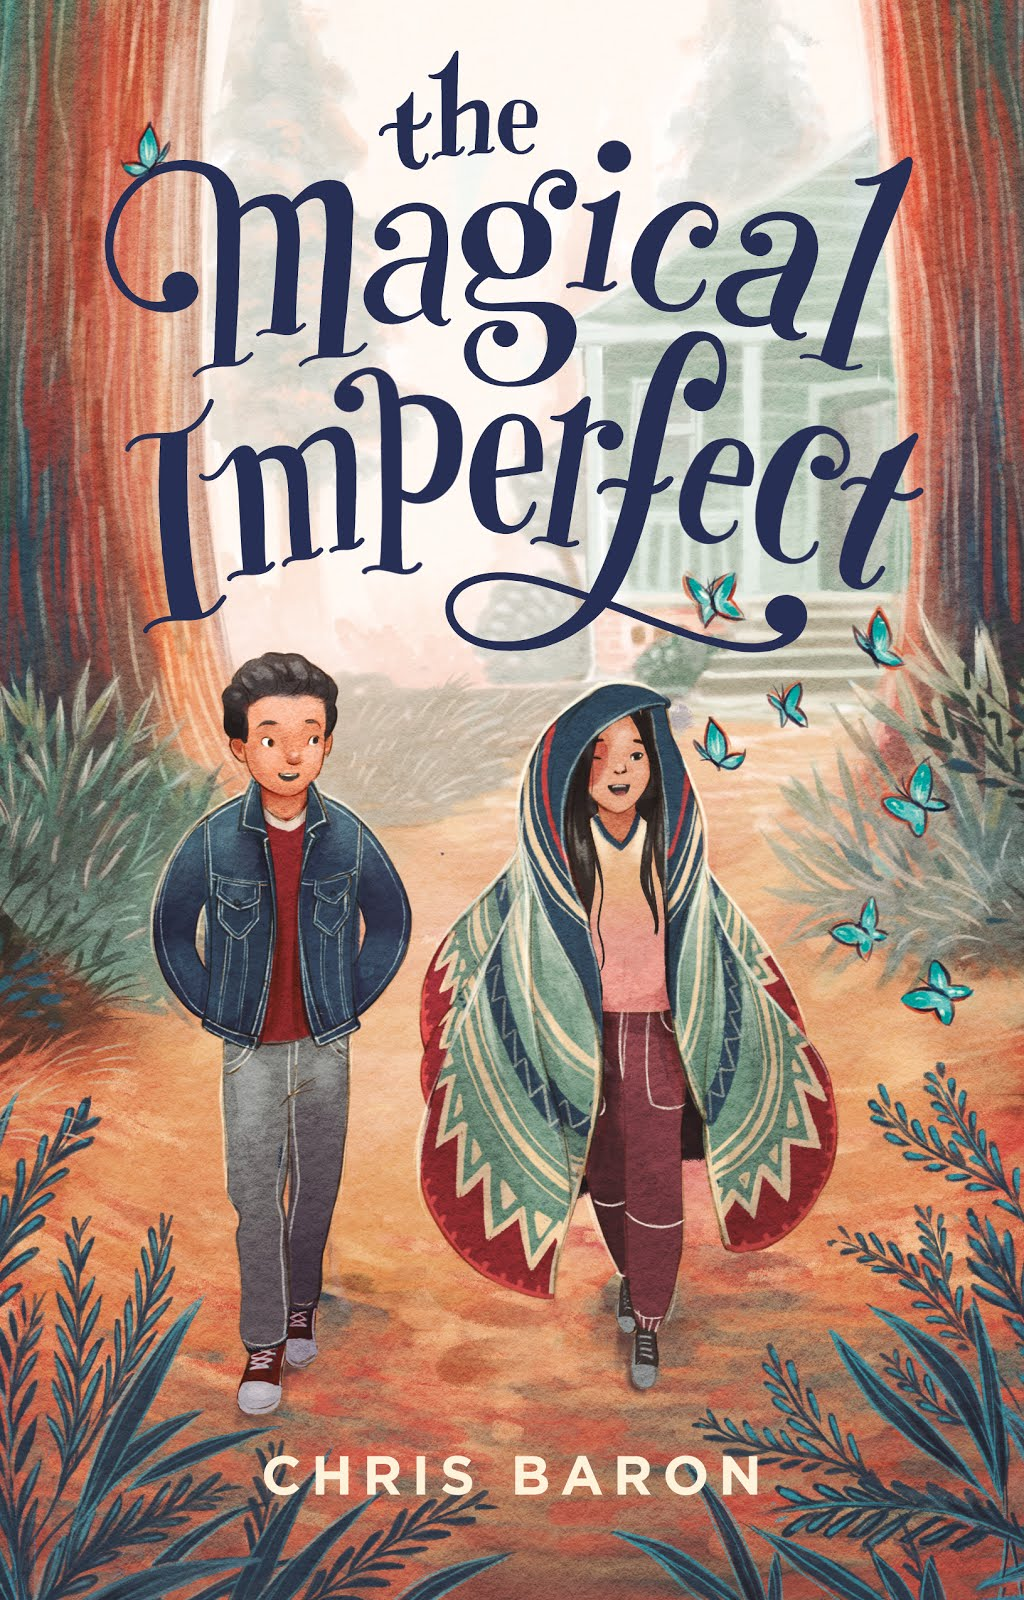 A Review Of The Magical Imperfect And An Interview With Author Chris Baron